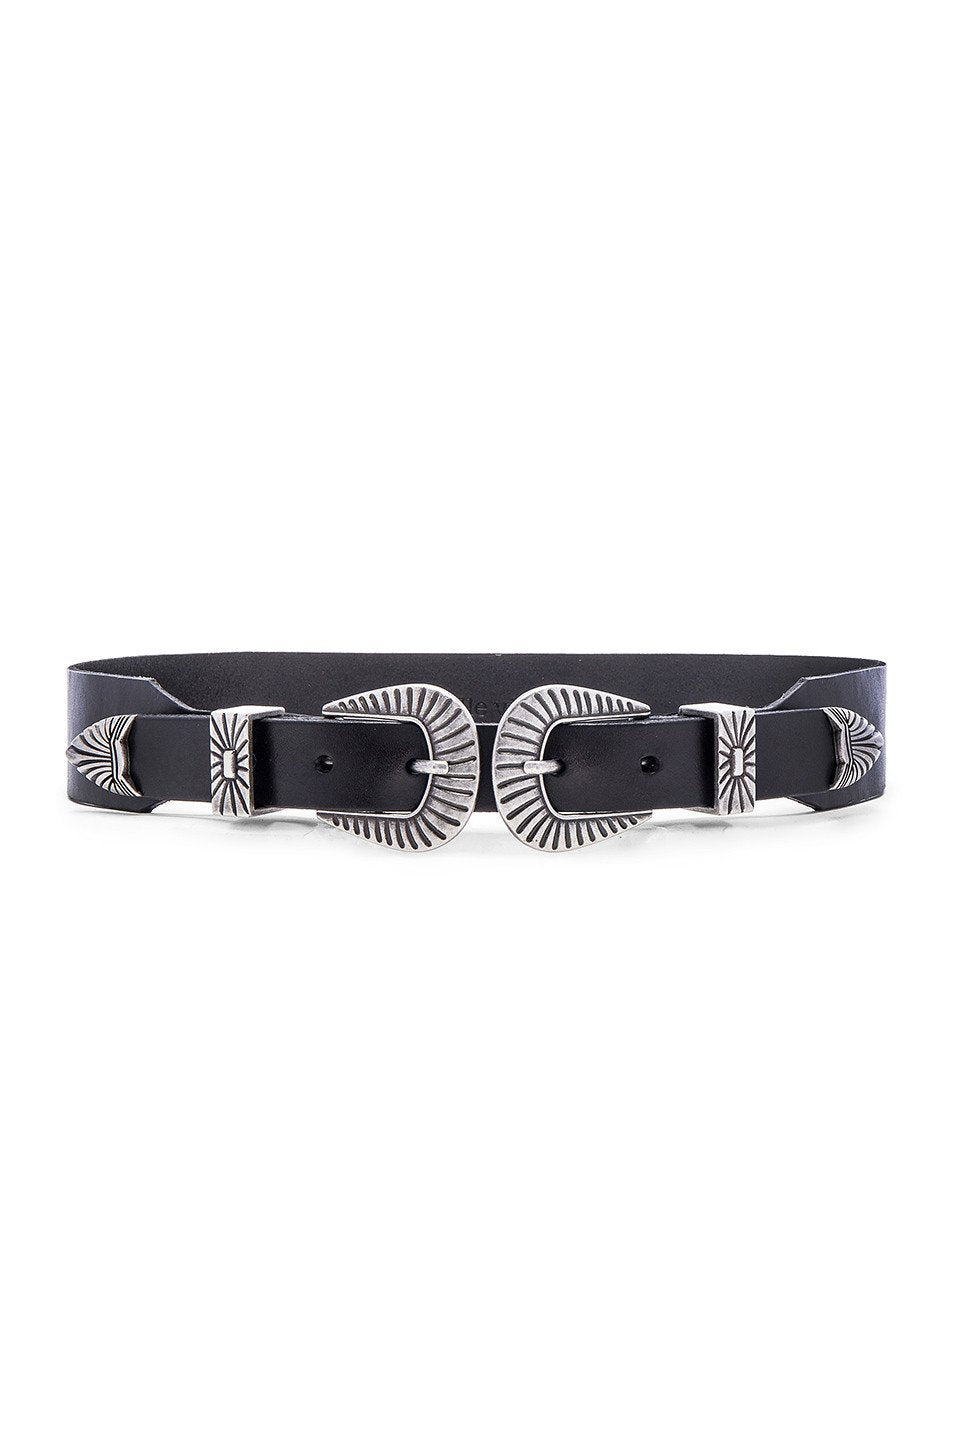 Double Buckle Belt - Kustom Label - 1